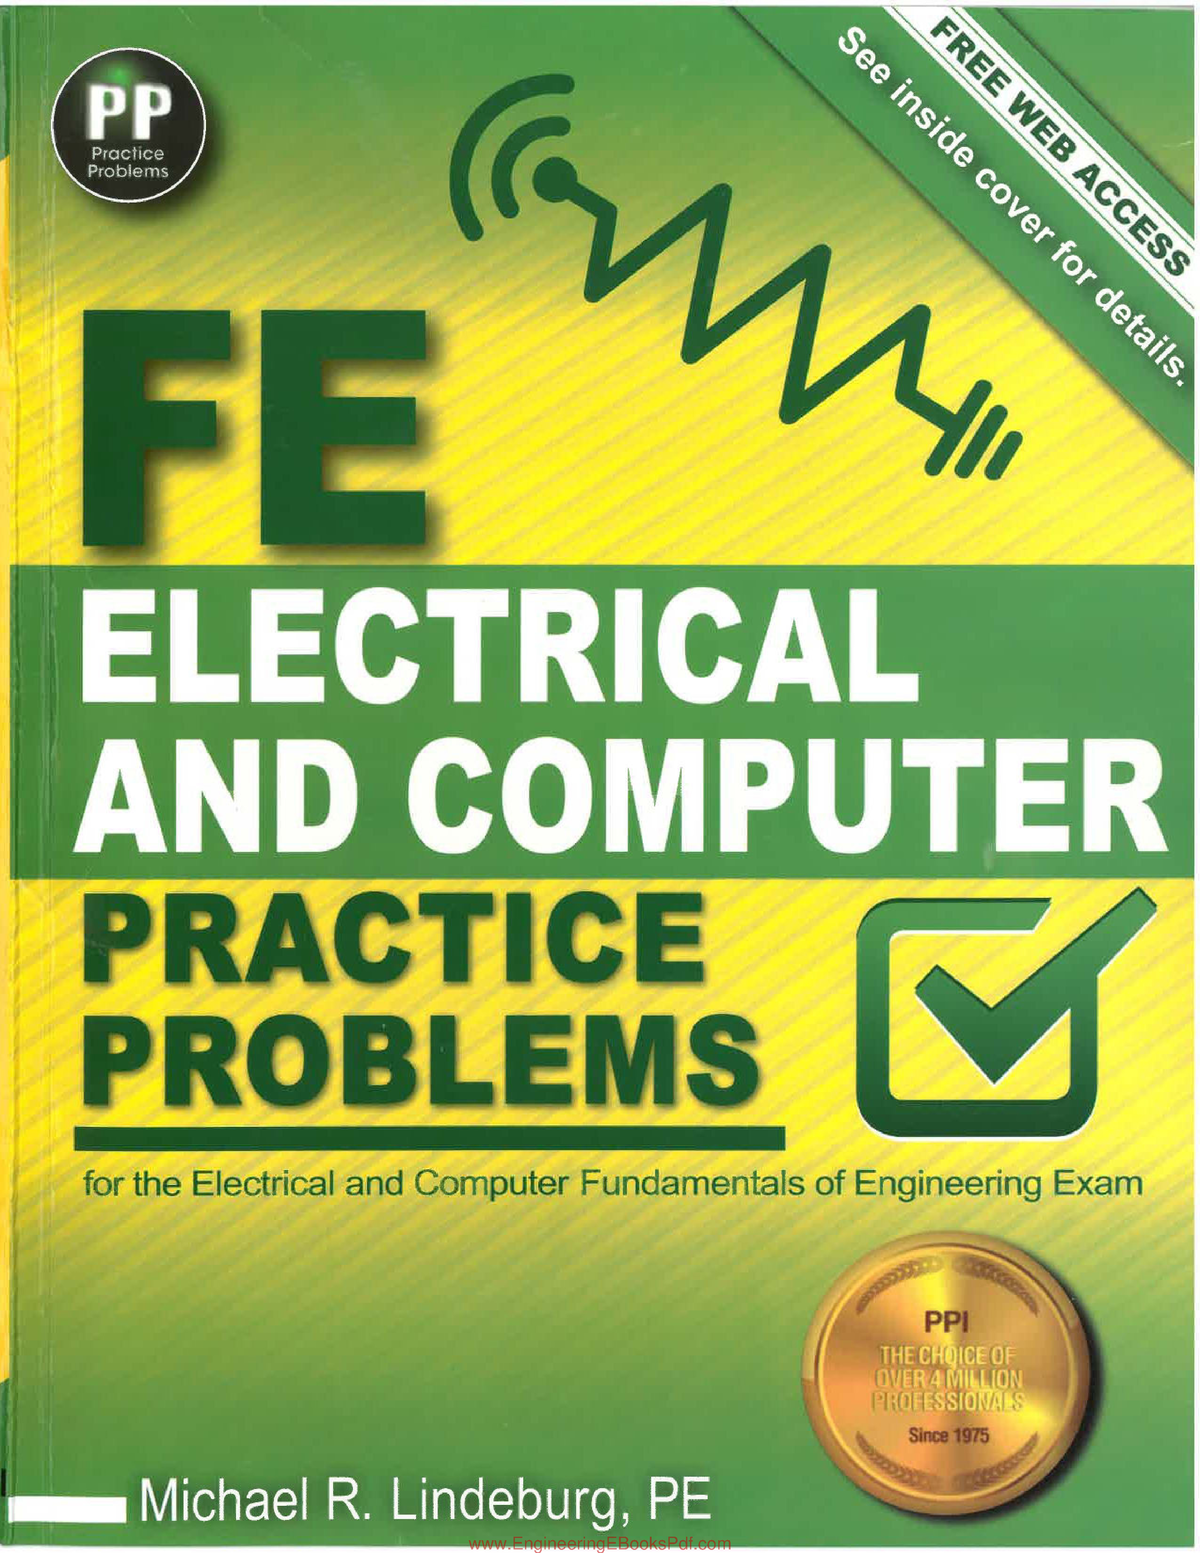 Fe Electrical And Computer Practice Exam Pdf